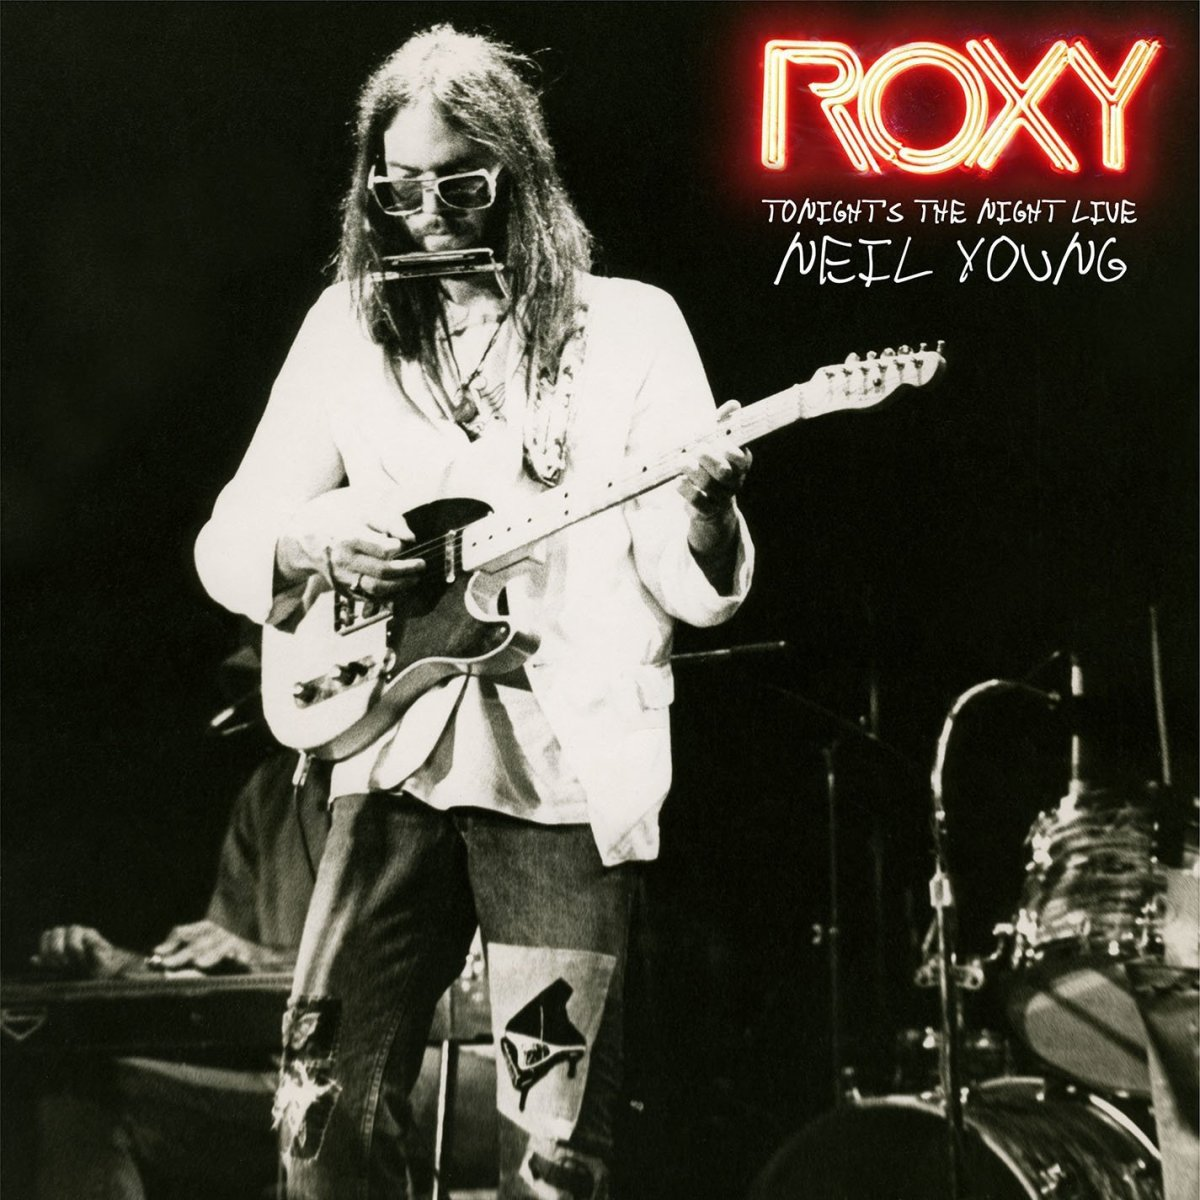 Neil Young – Roxy Tonight's the Night Live review